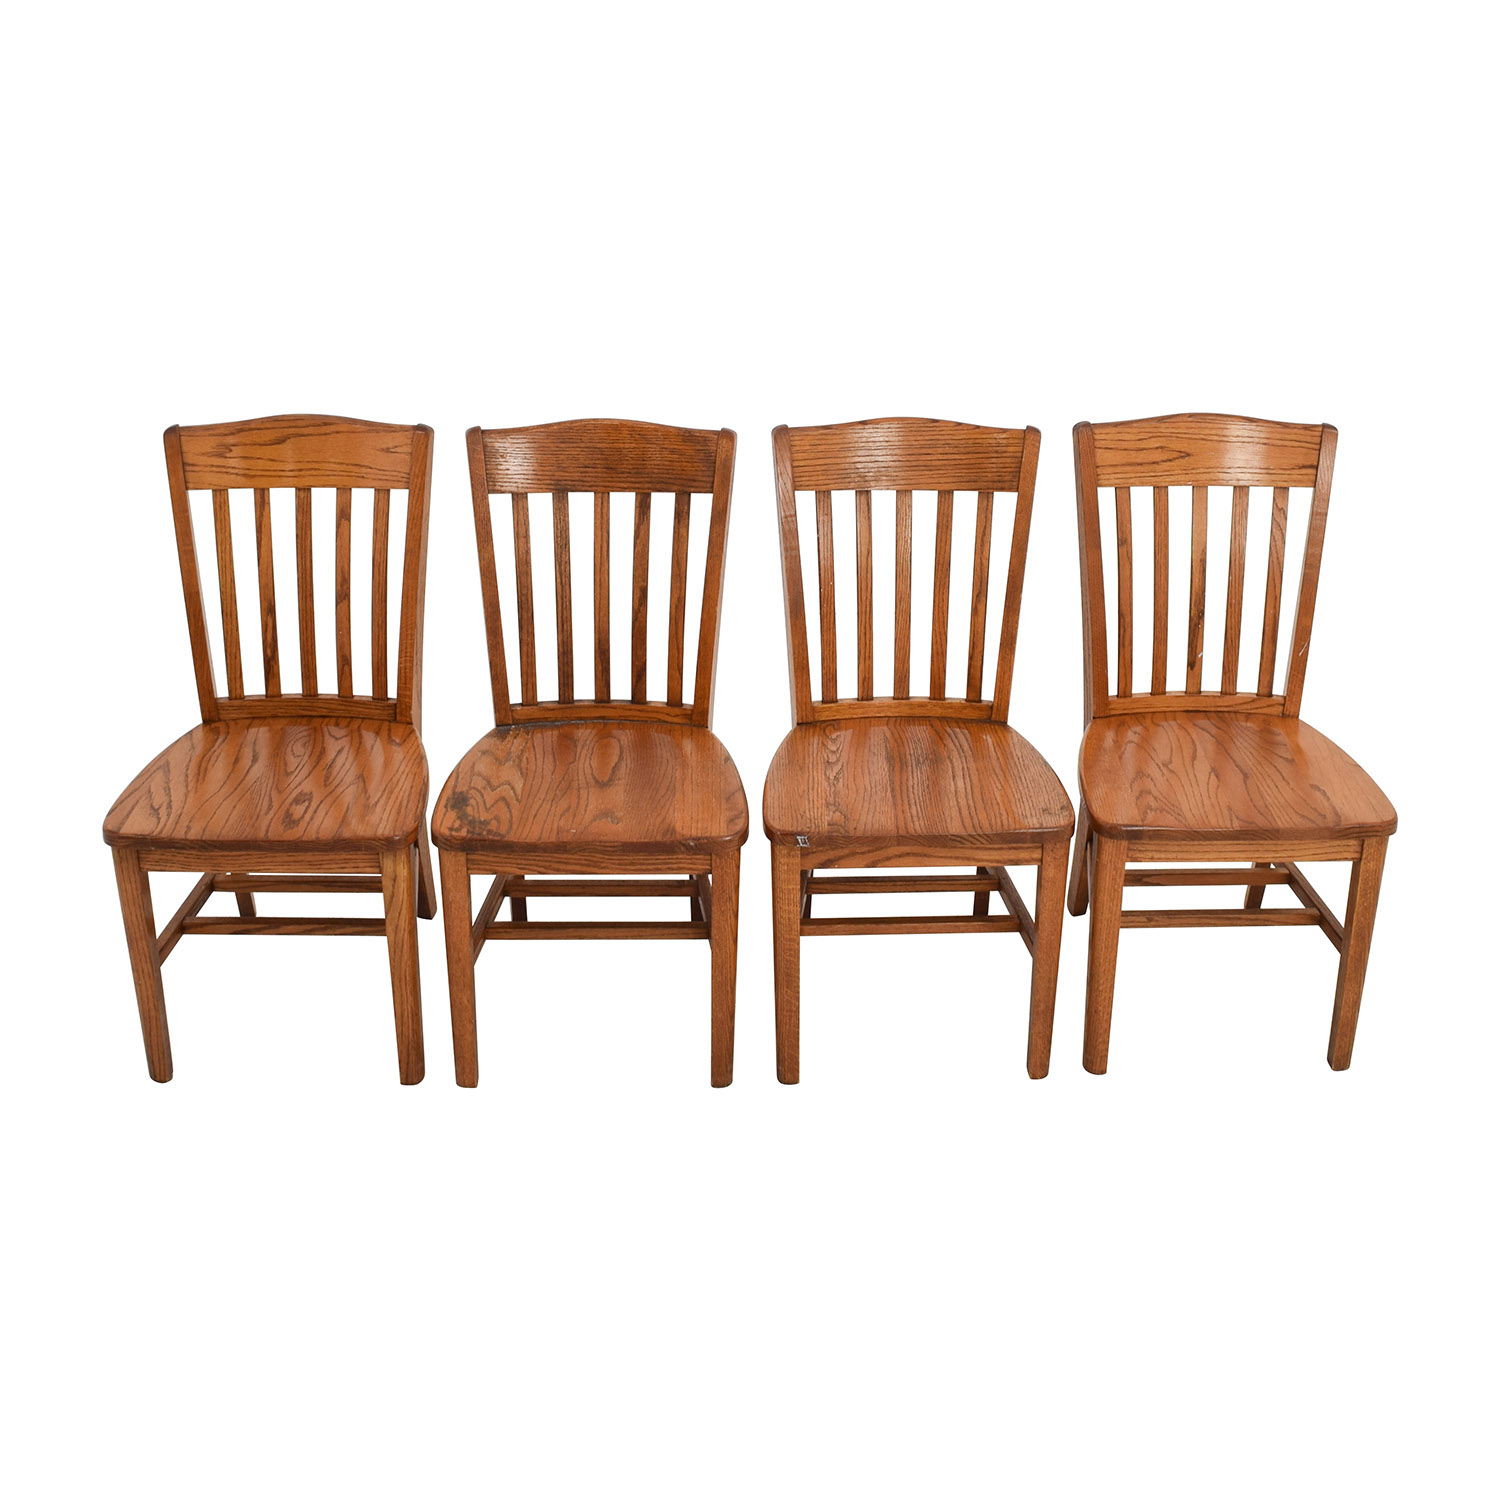 Four Brown Slat Back Wood Chairs nj